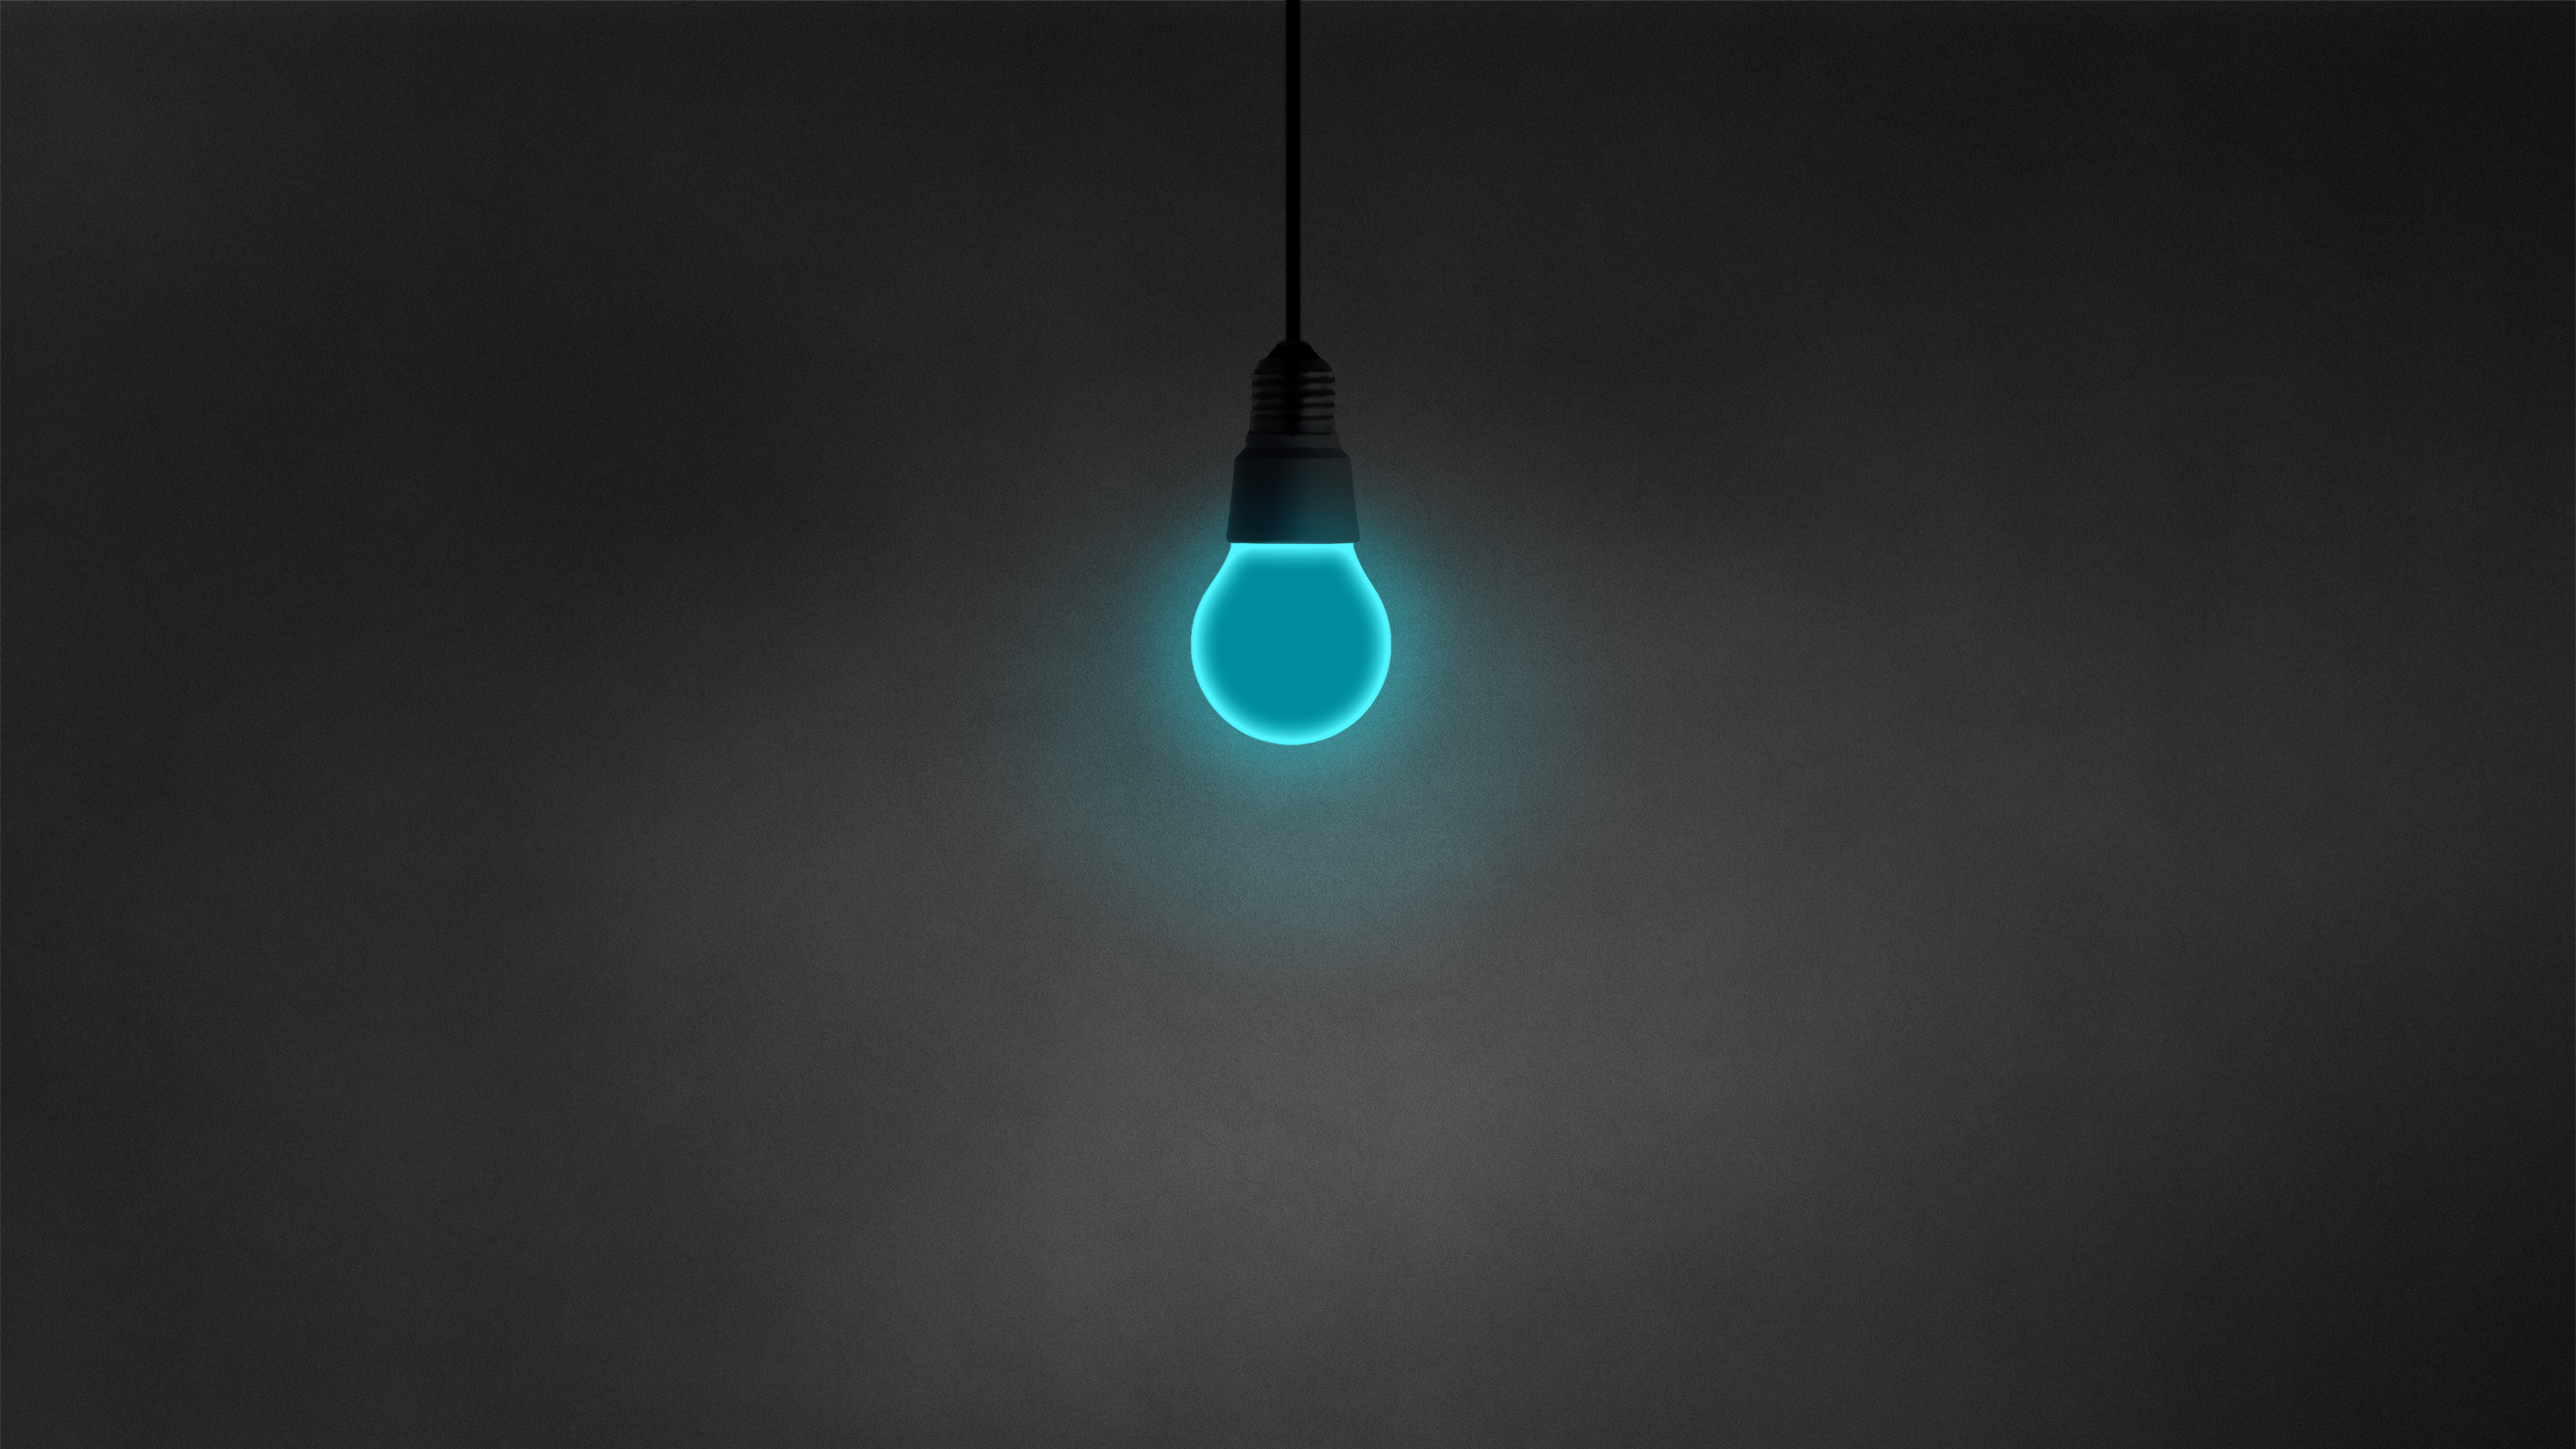 General 3840x2160 minimalism light bulb dark simple cyan